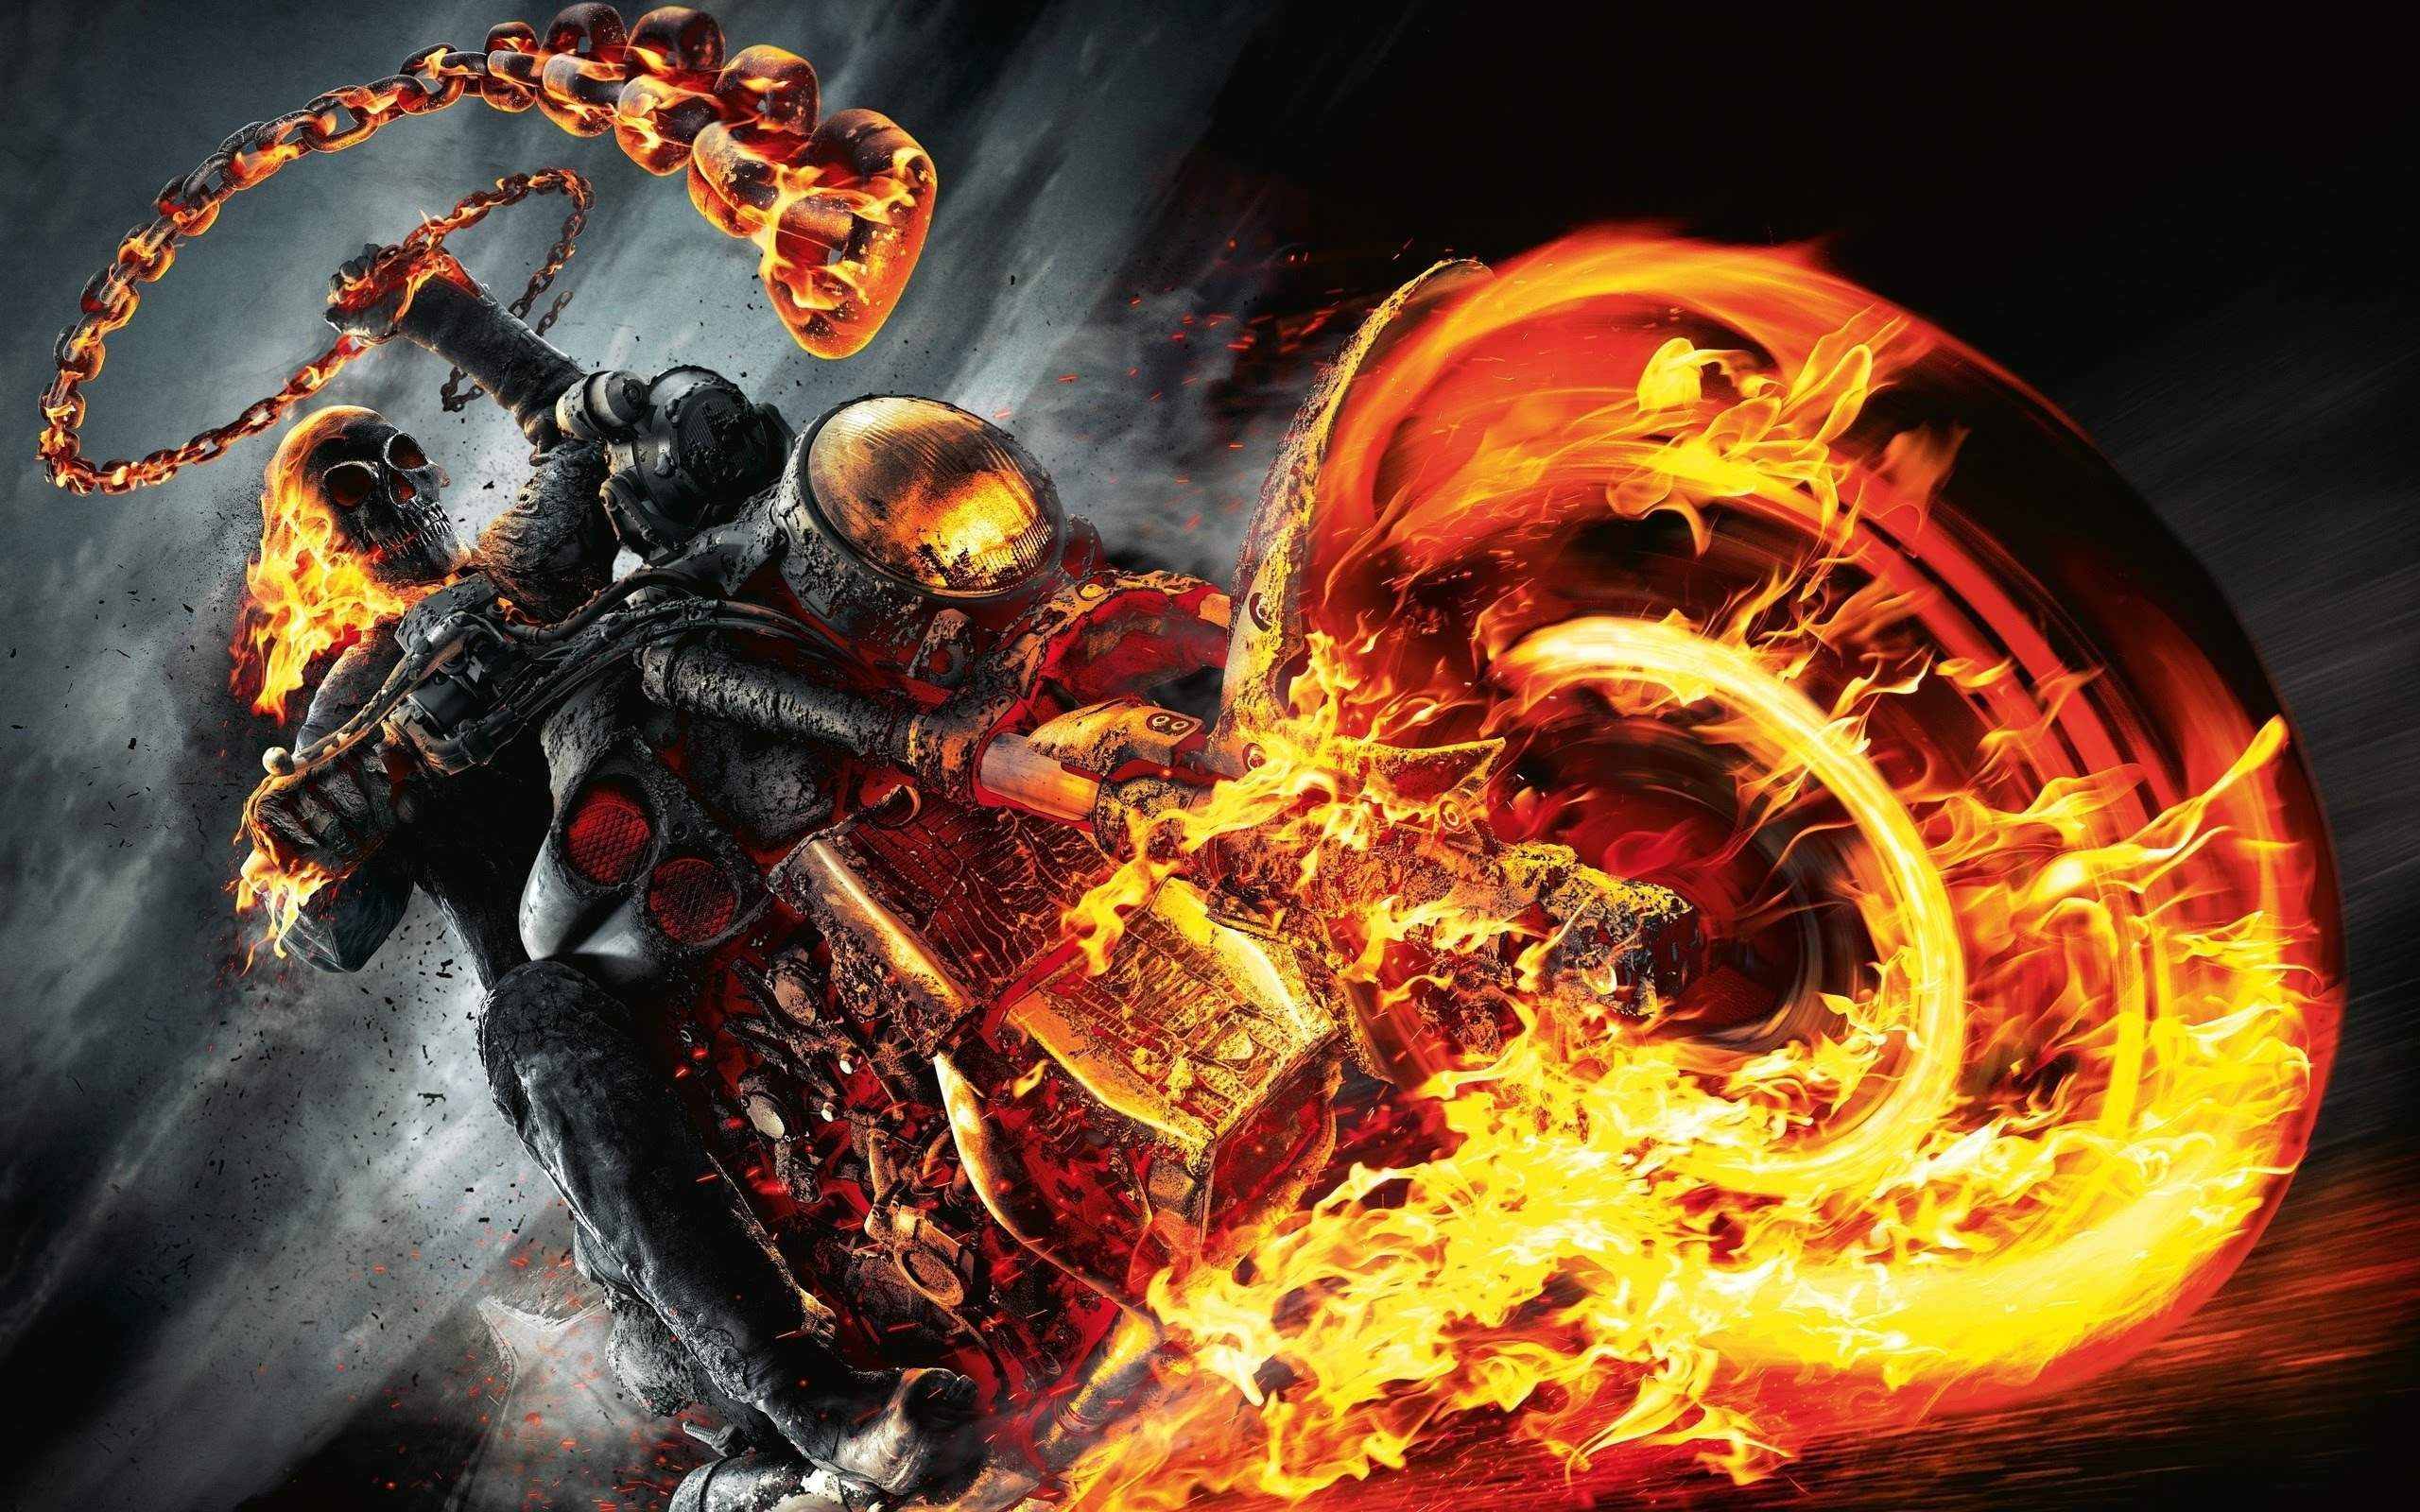 2560x1600 Ghost Rider Bike Wallpaper HD Download For Desktop and Mobile ...